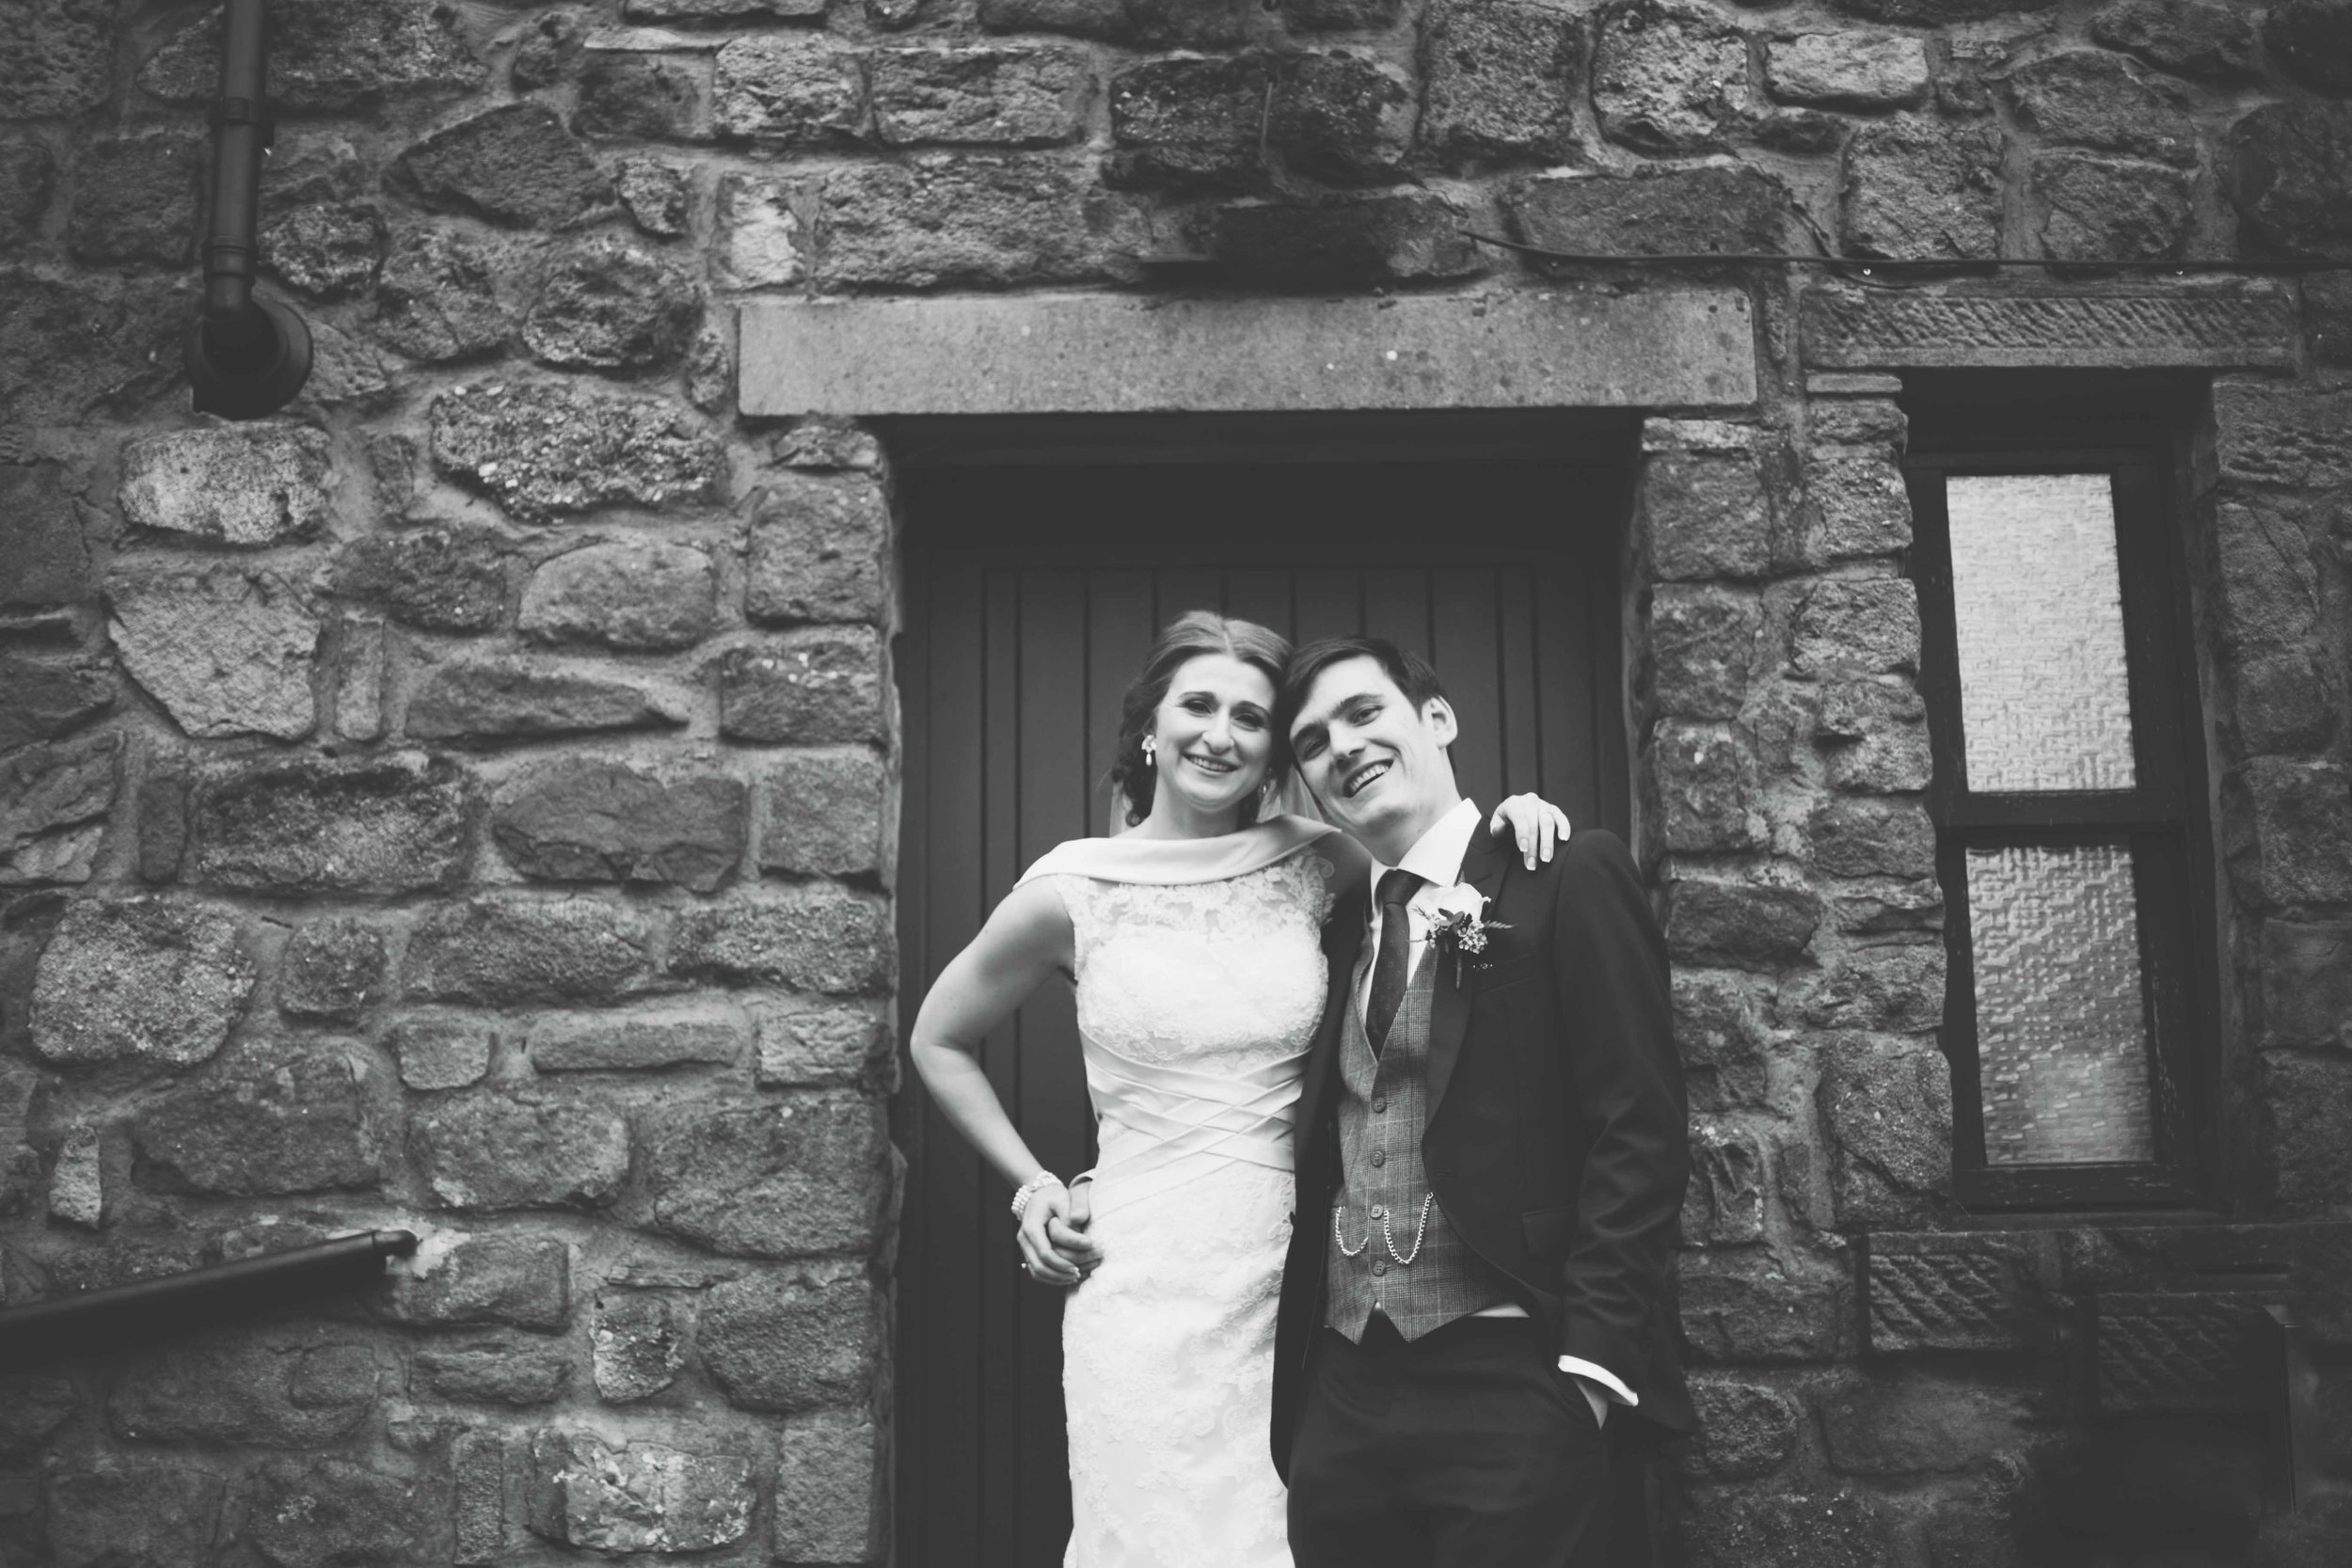 Wedding photographer in cheshire (1 of 1)-18.jpg